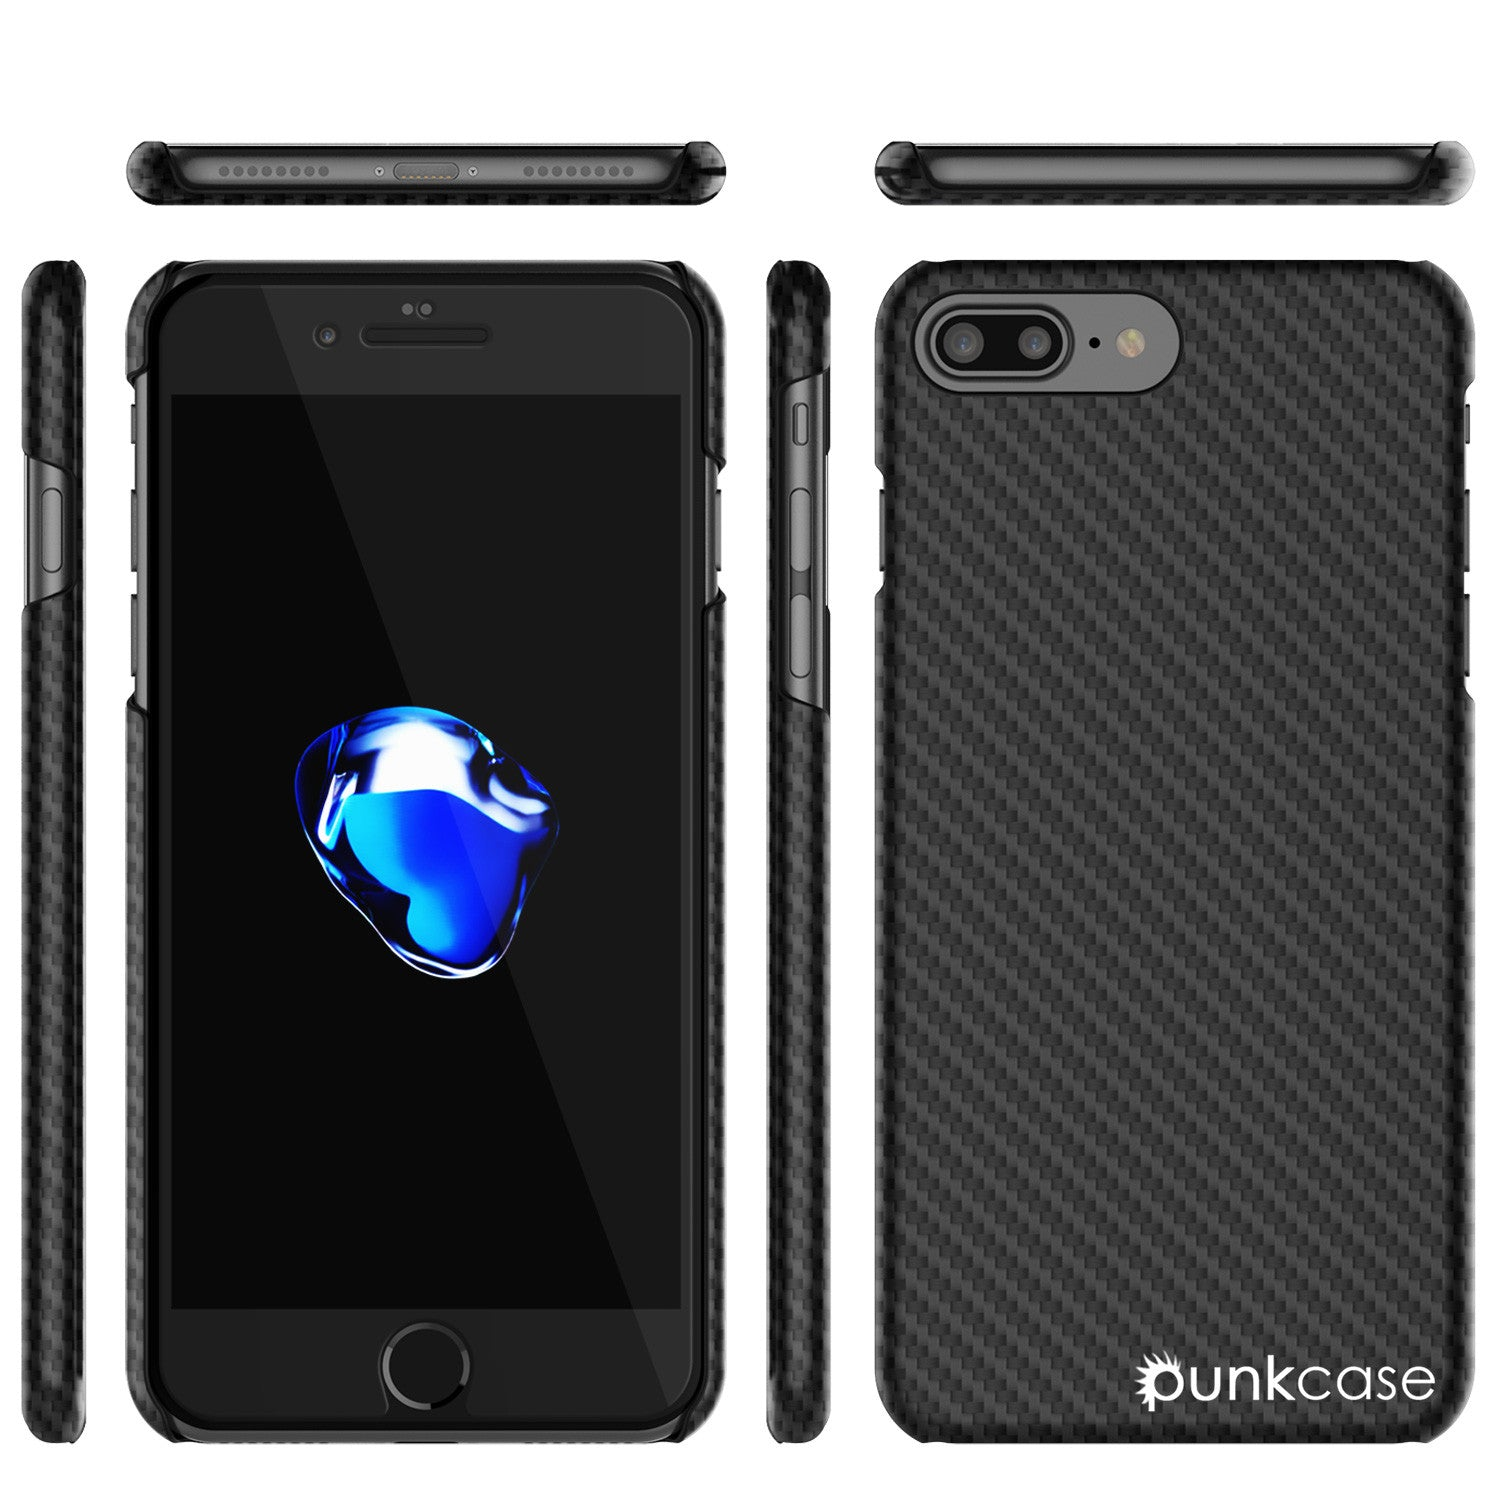 iPhone 7+ Plus Case - Punkcase CarbonShield Jet Black